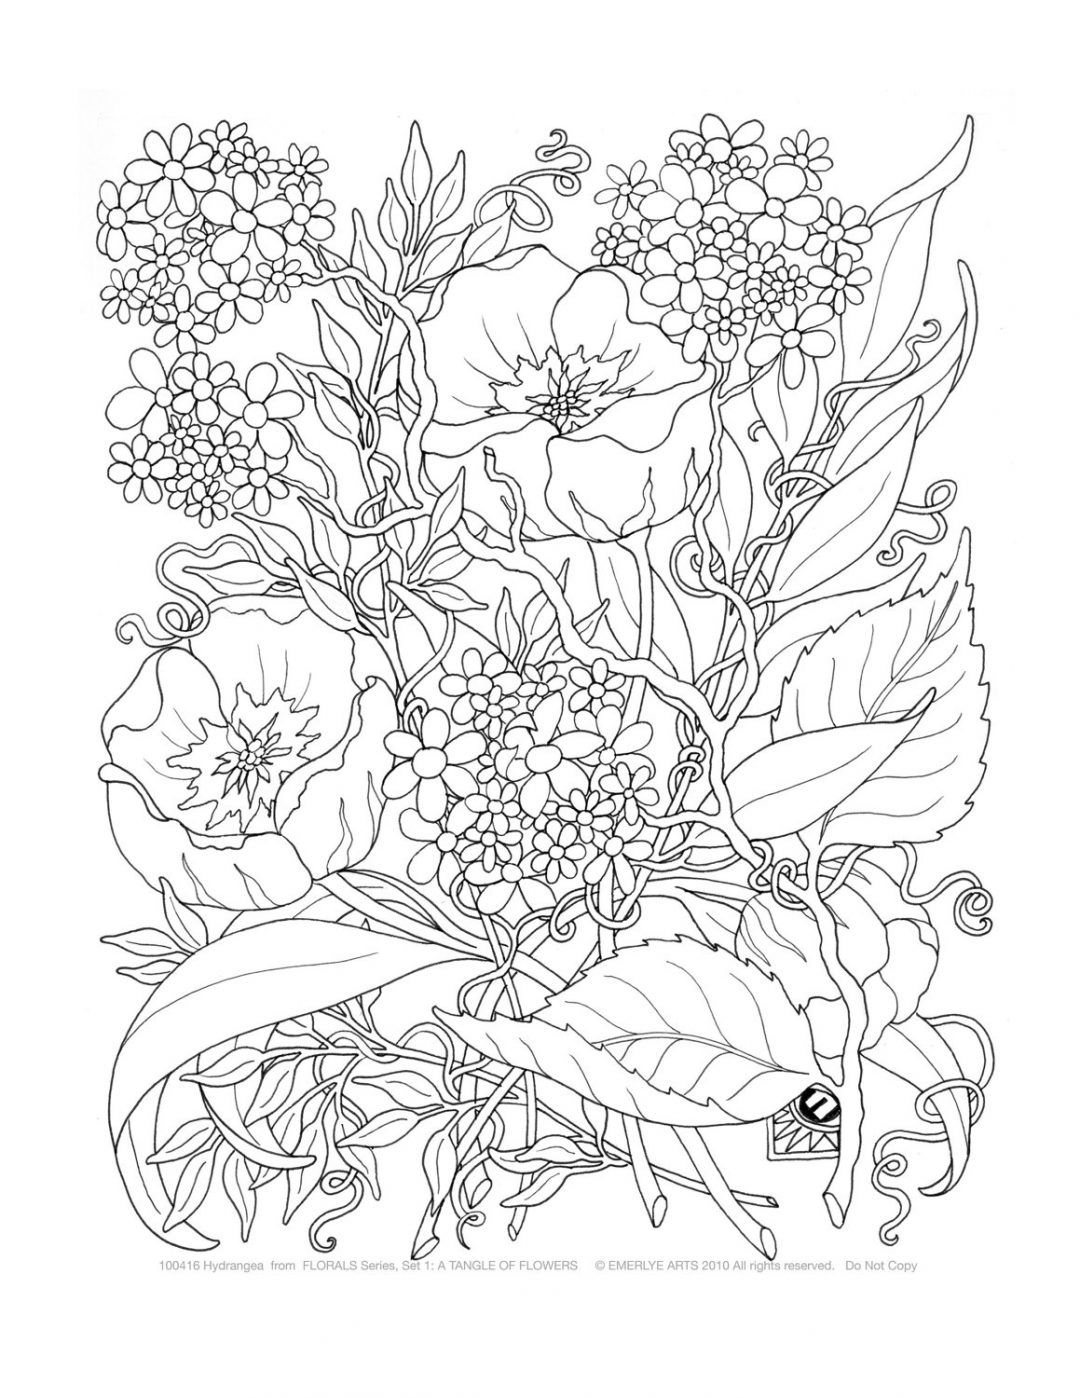 Flower Coloring Pages for Adults | Flowers | Flower coloring ...